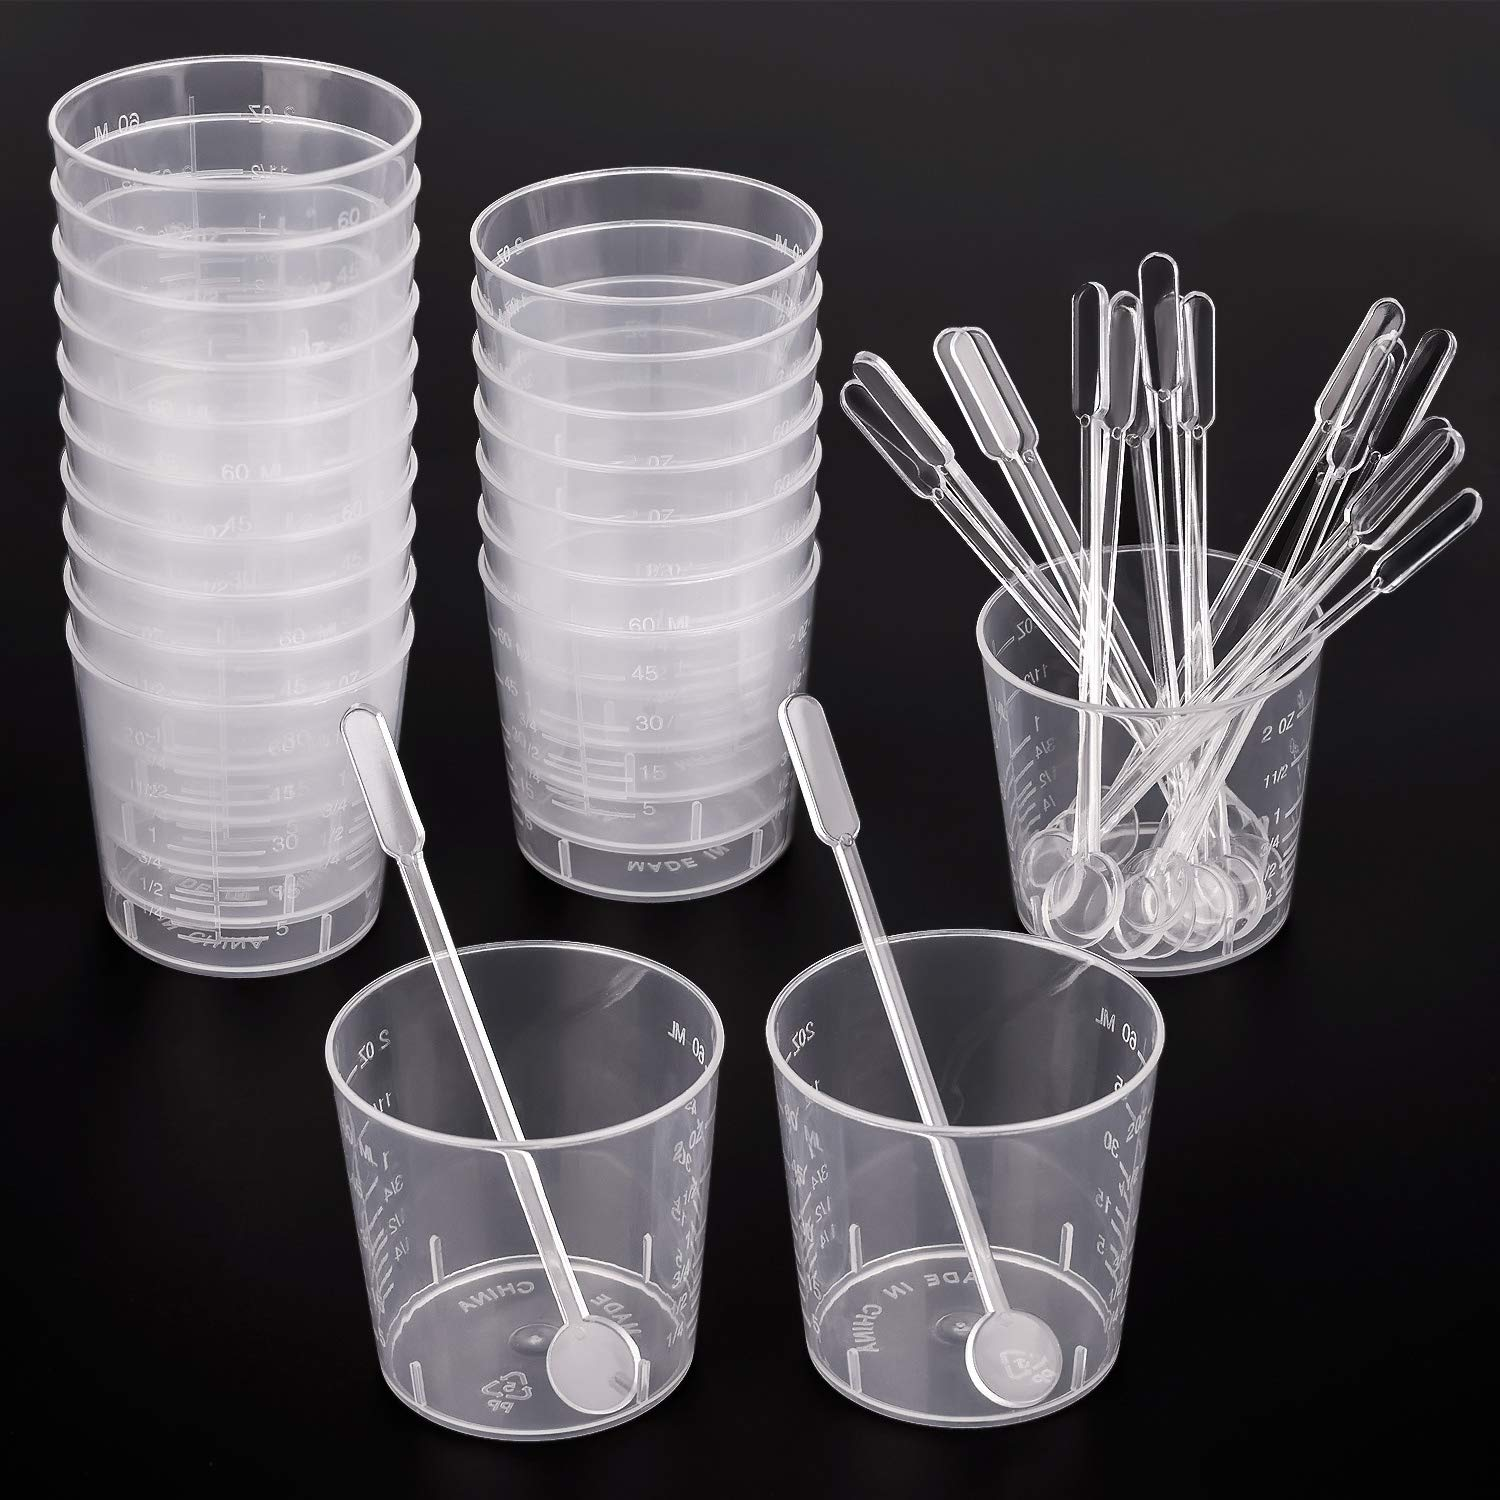 WXJ13 20 Pack 60 ml Transparent Polypropylene Plastic Graduated Cups 20 Stiring Bars Mixing Paint Stain Epoxy Resin